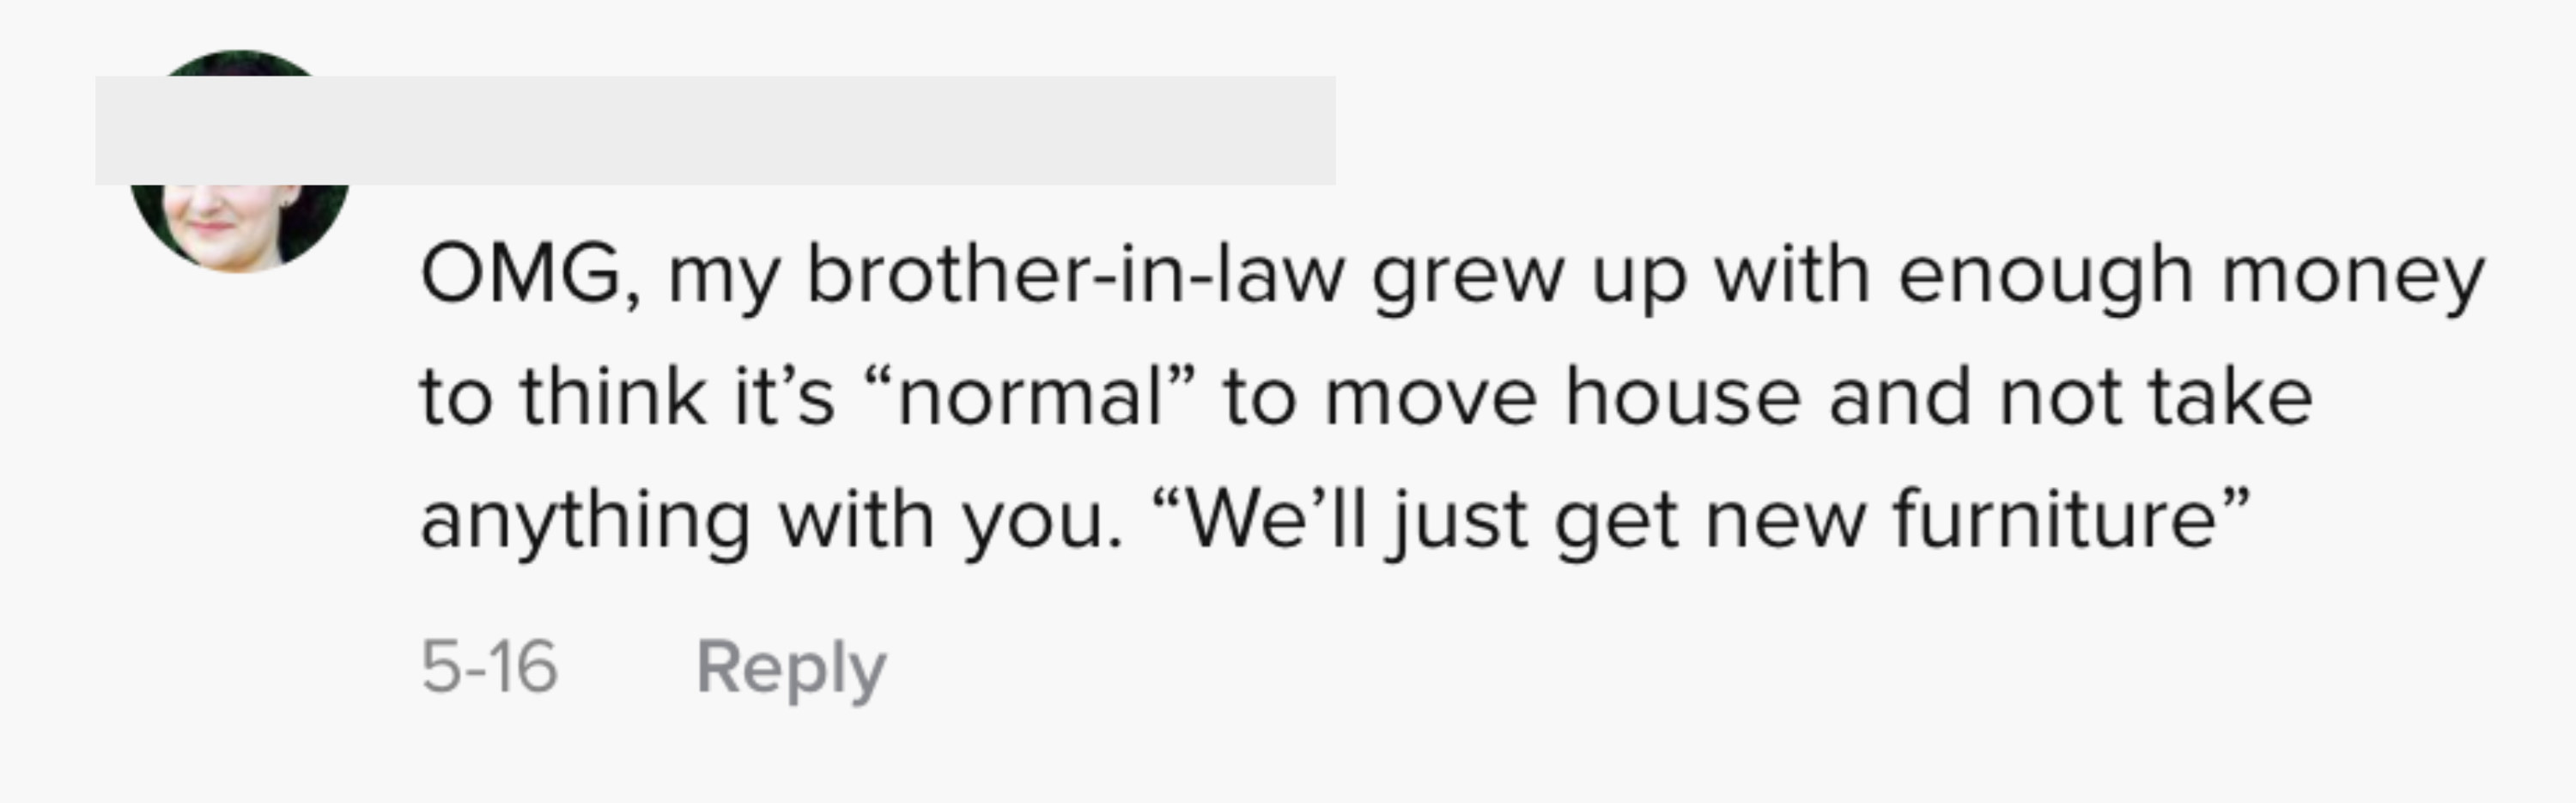 """OMG, my brother-in-law grew up with enough money to think it's """"normal"""" to move house and not take anything with you. """"We'll just get new furniture"""""""